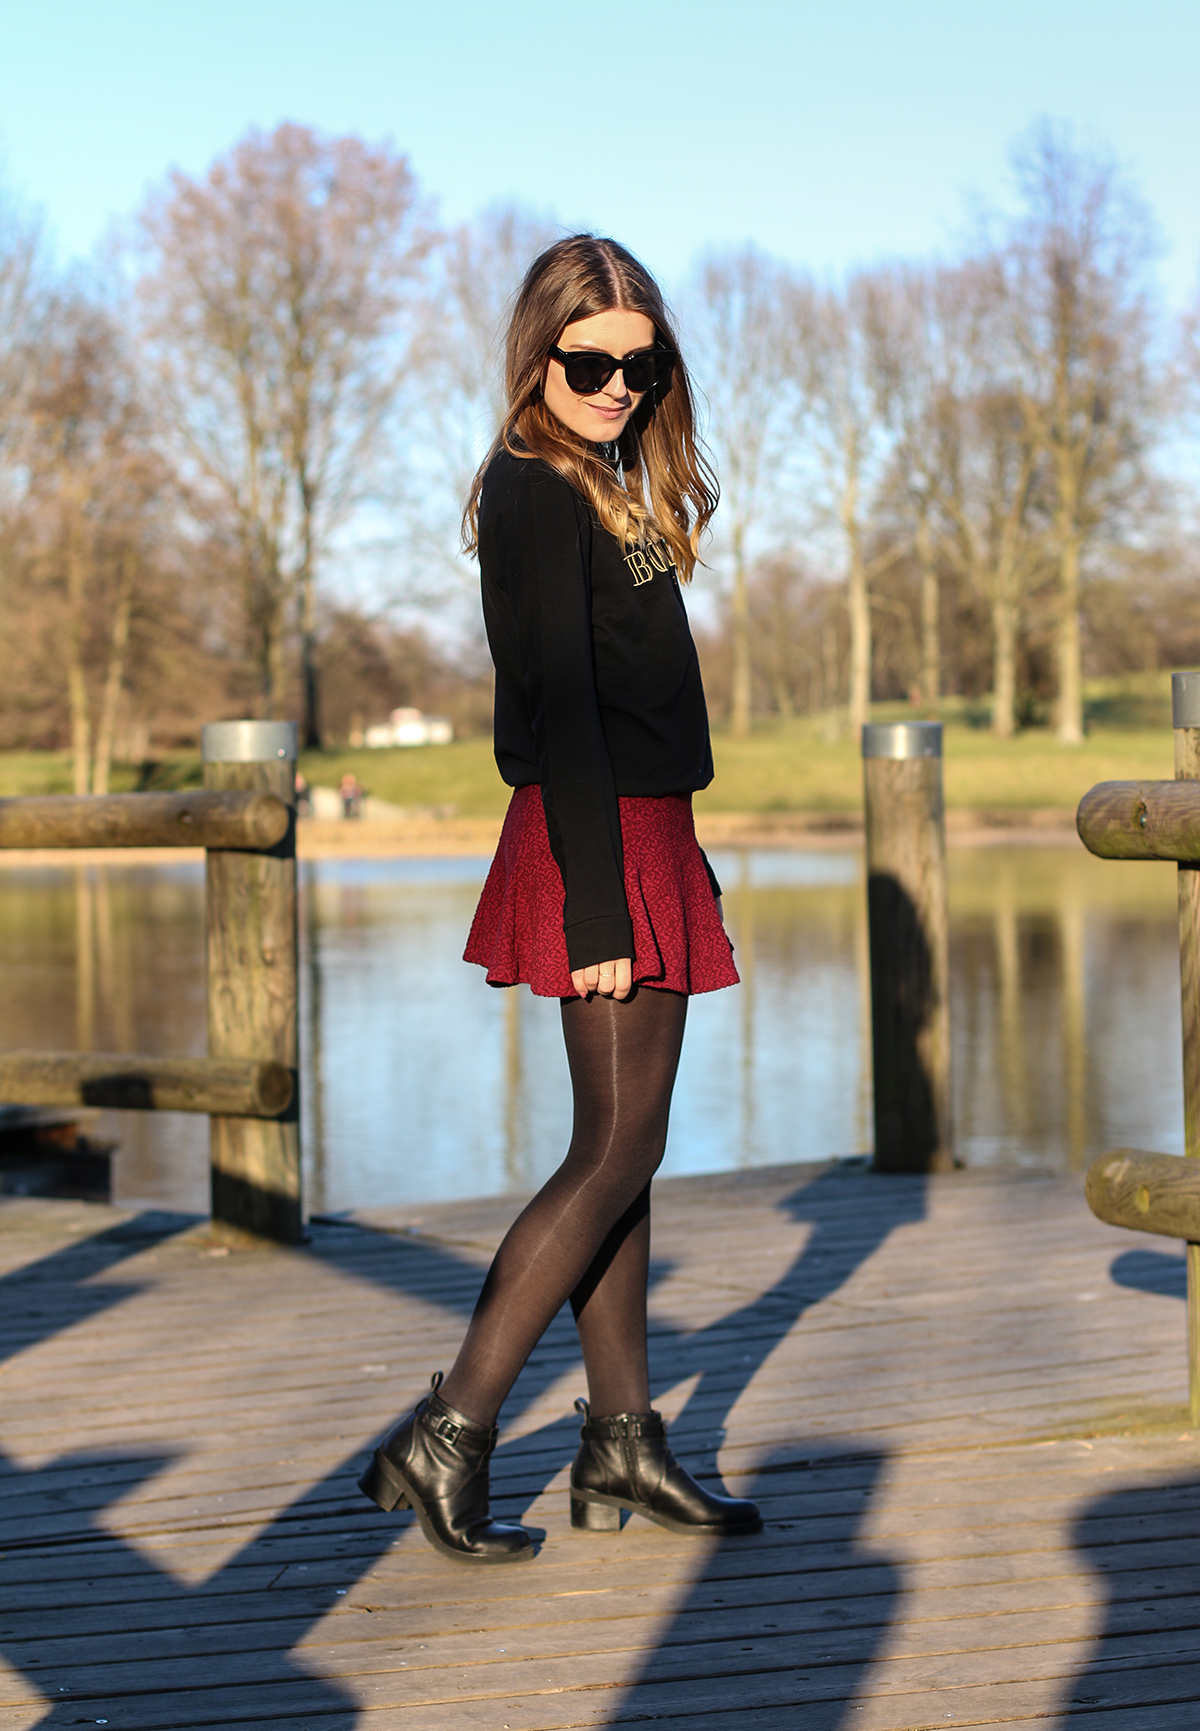 Winered_Skirt_4